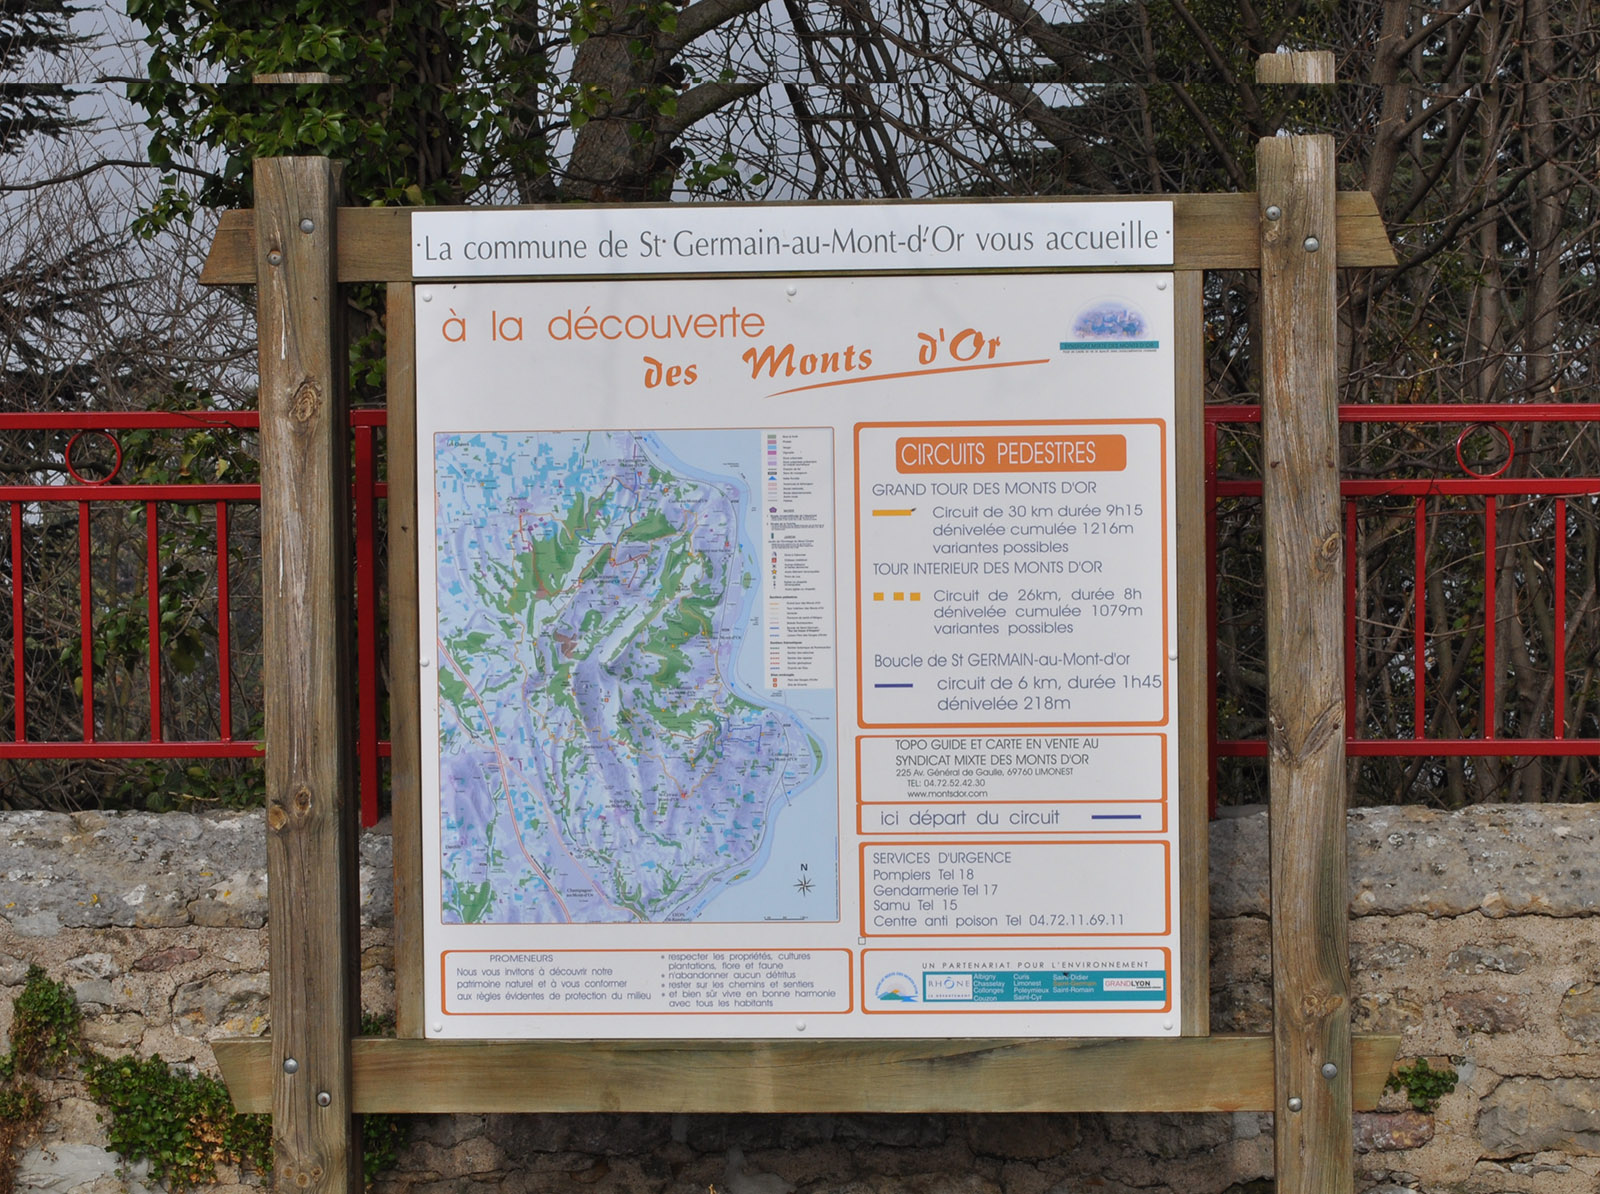 MBF - Balisage Monts d'Or (4)